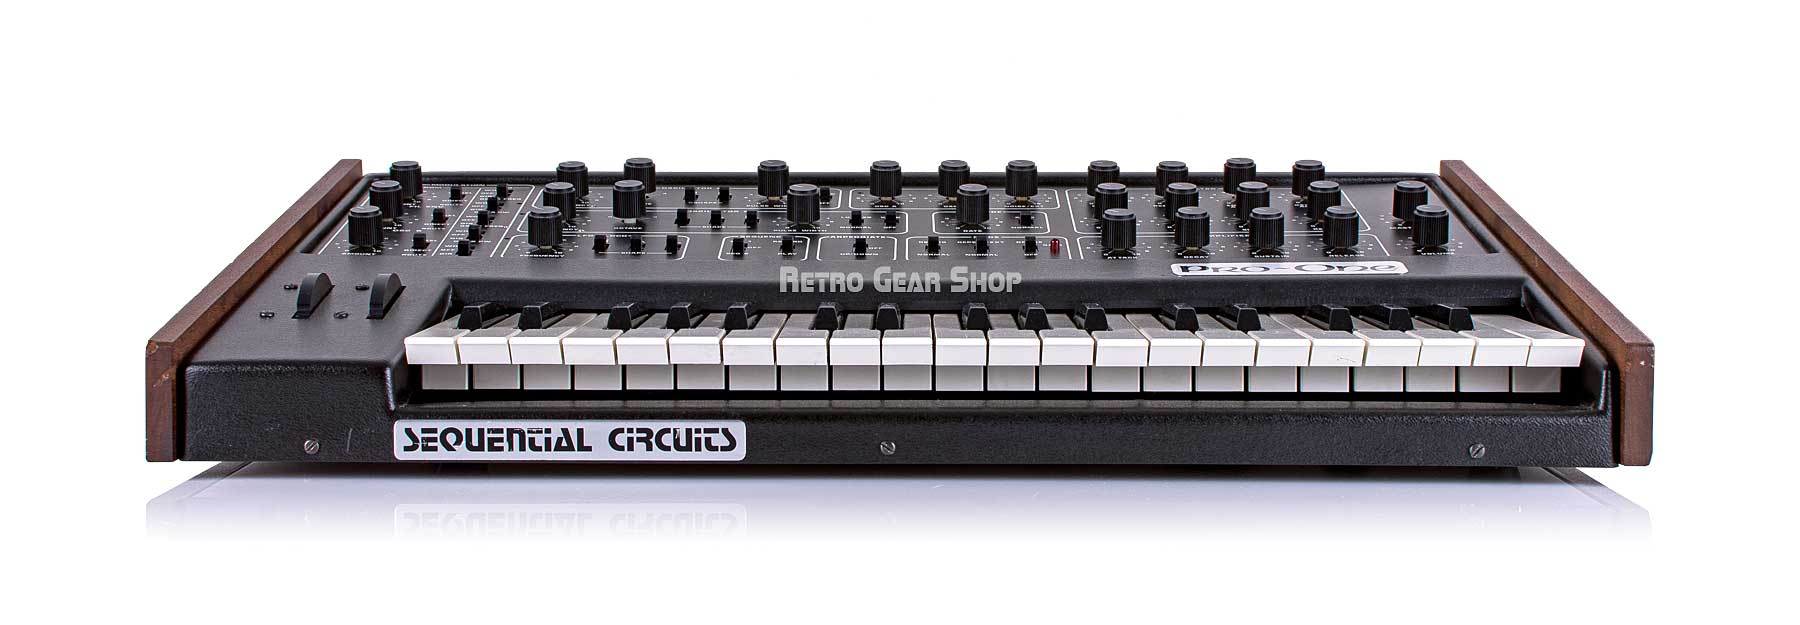 Sequential Circuits Pro One Front